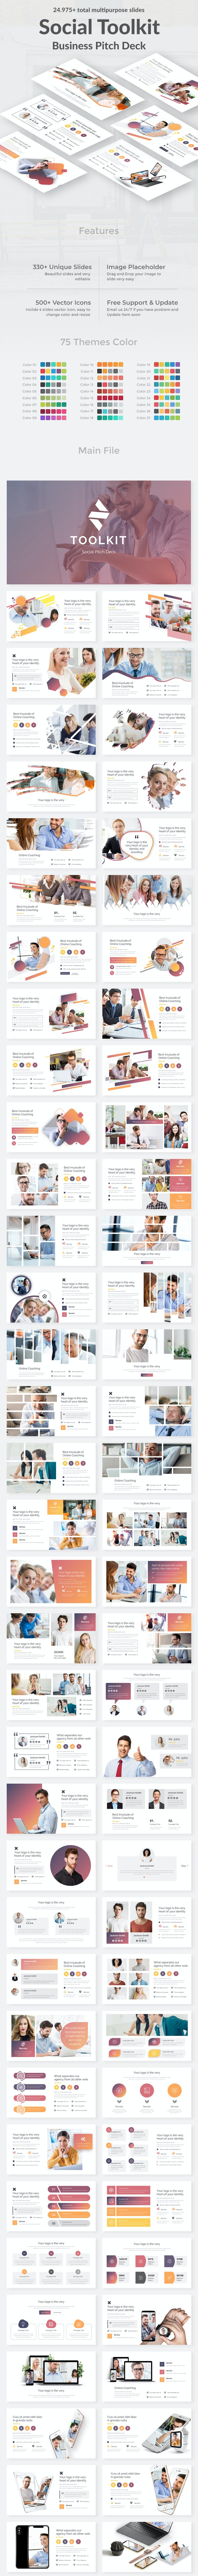 Social Toolkit Pitch Deck Google Slide Template - Google Slides Presentation Templates